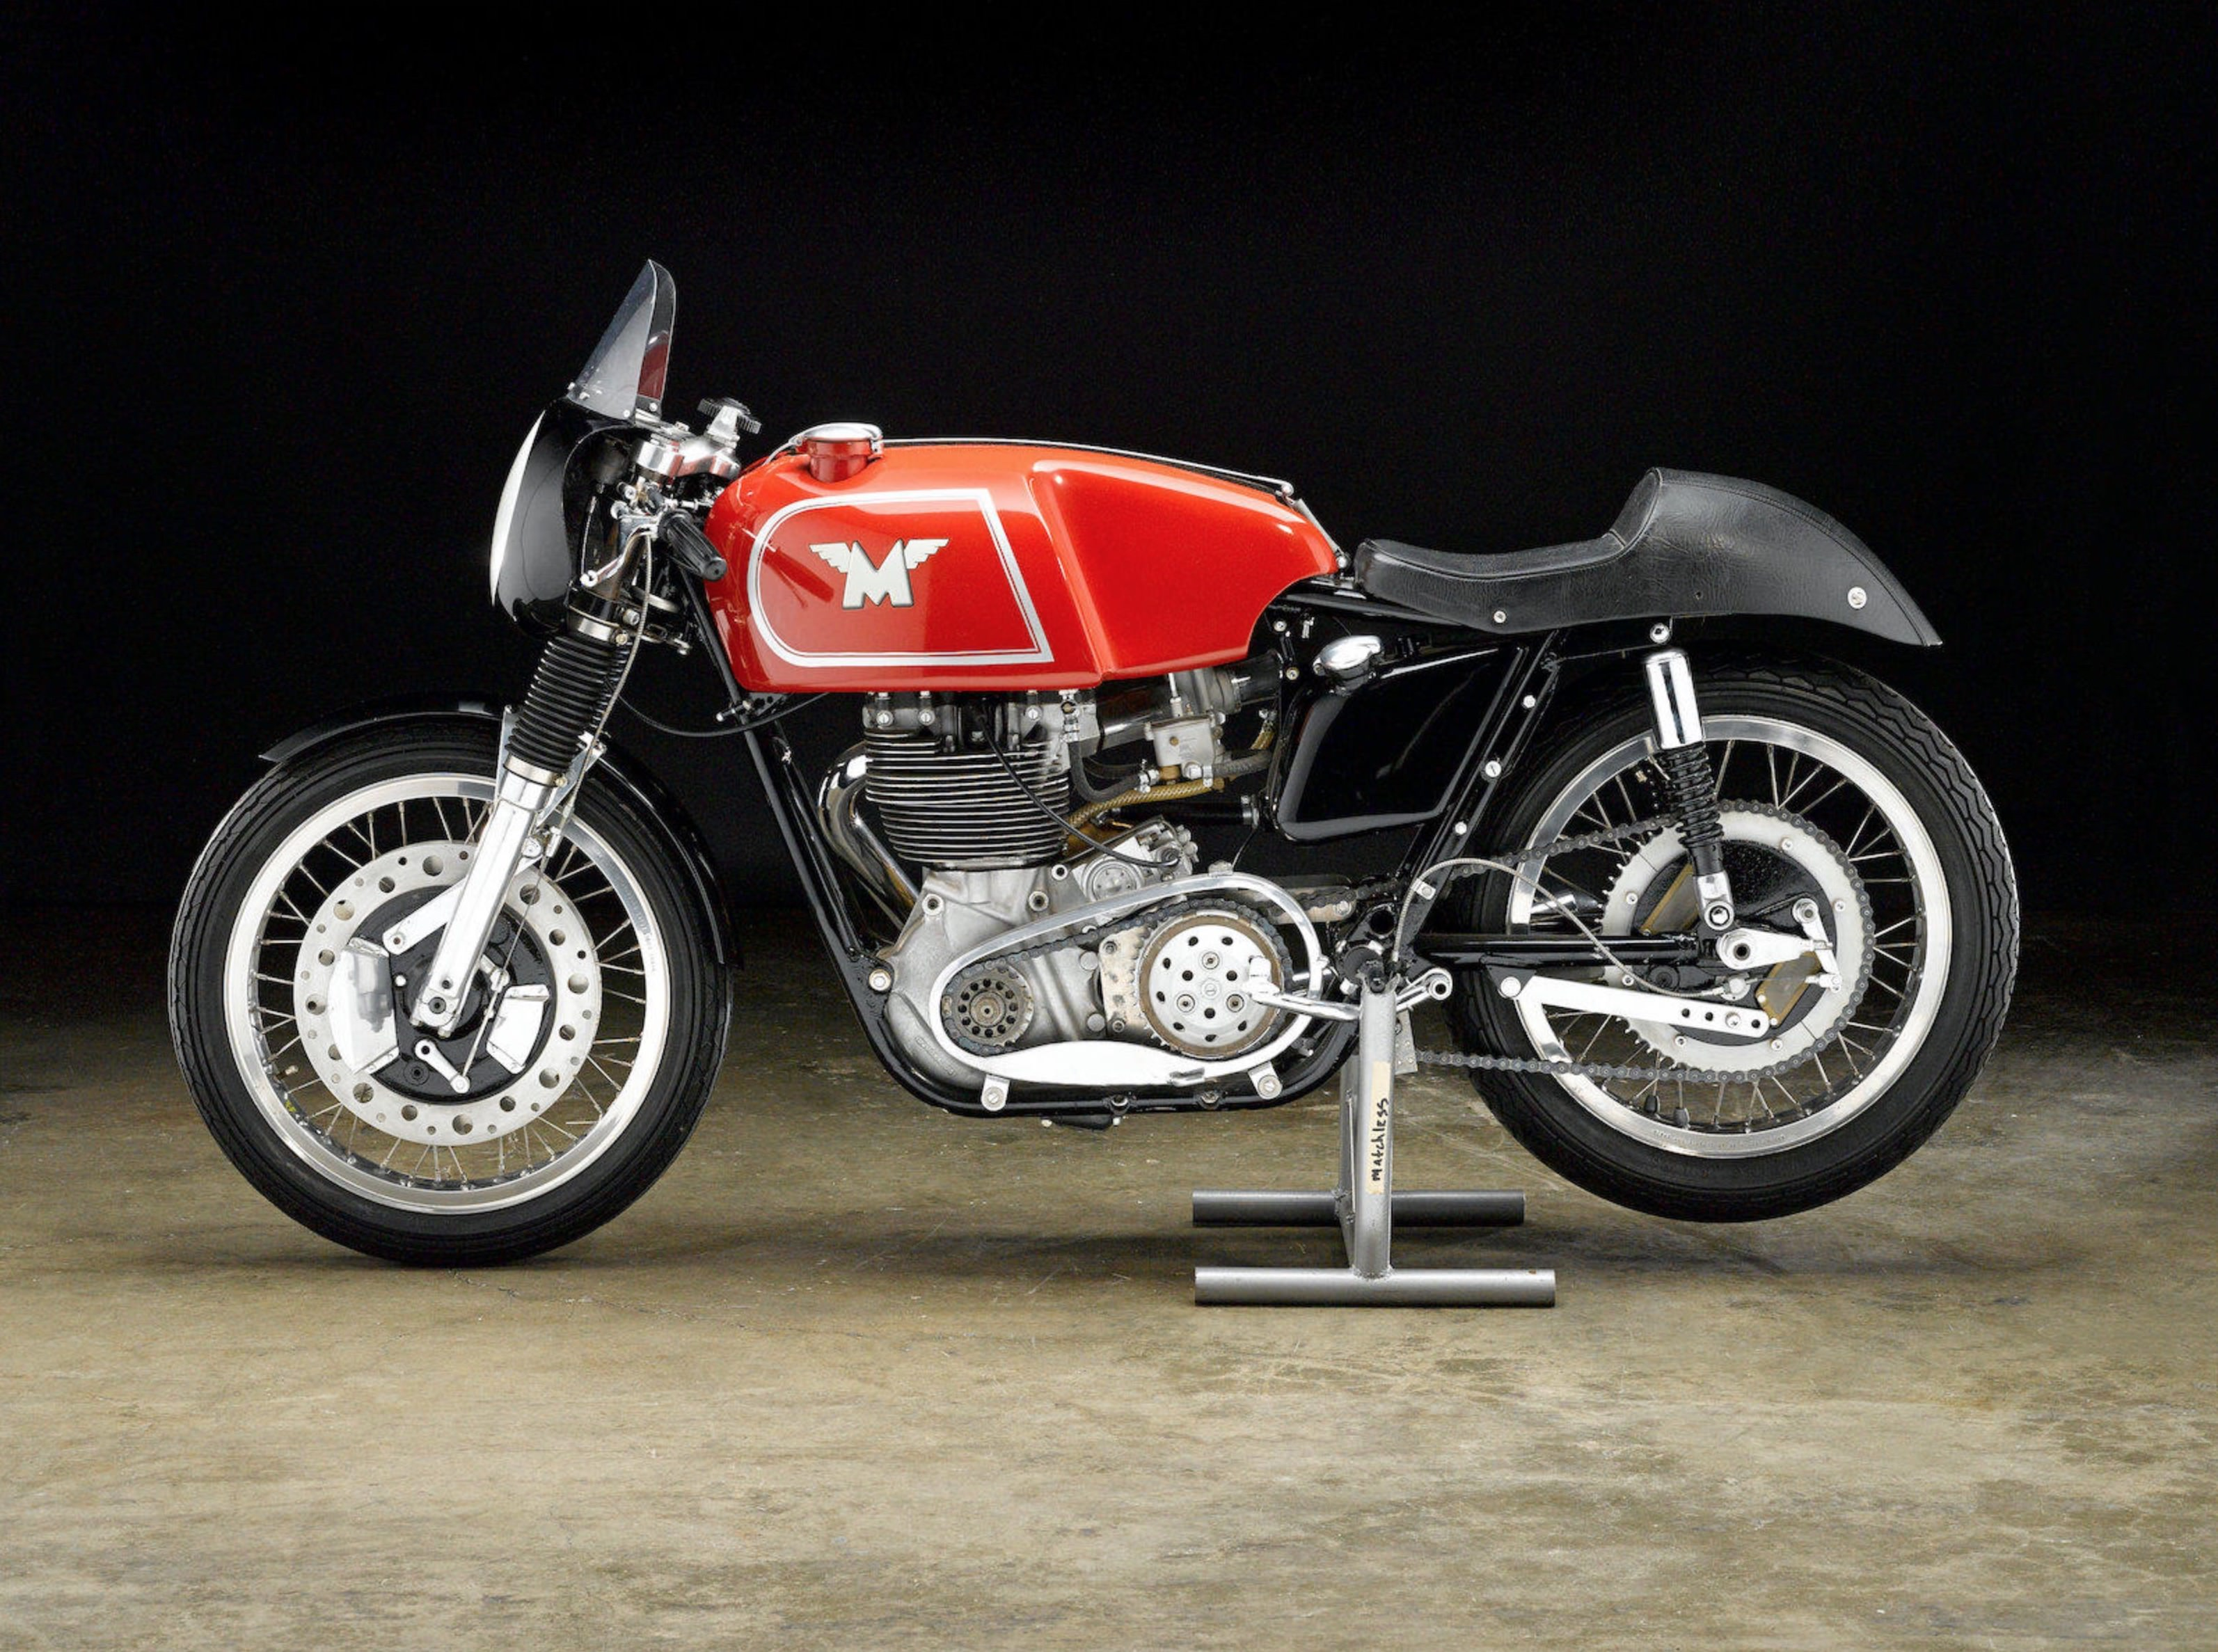 Matchless G50 Racing Motorcycle